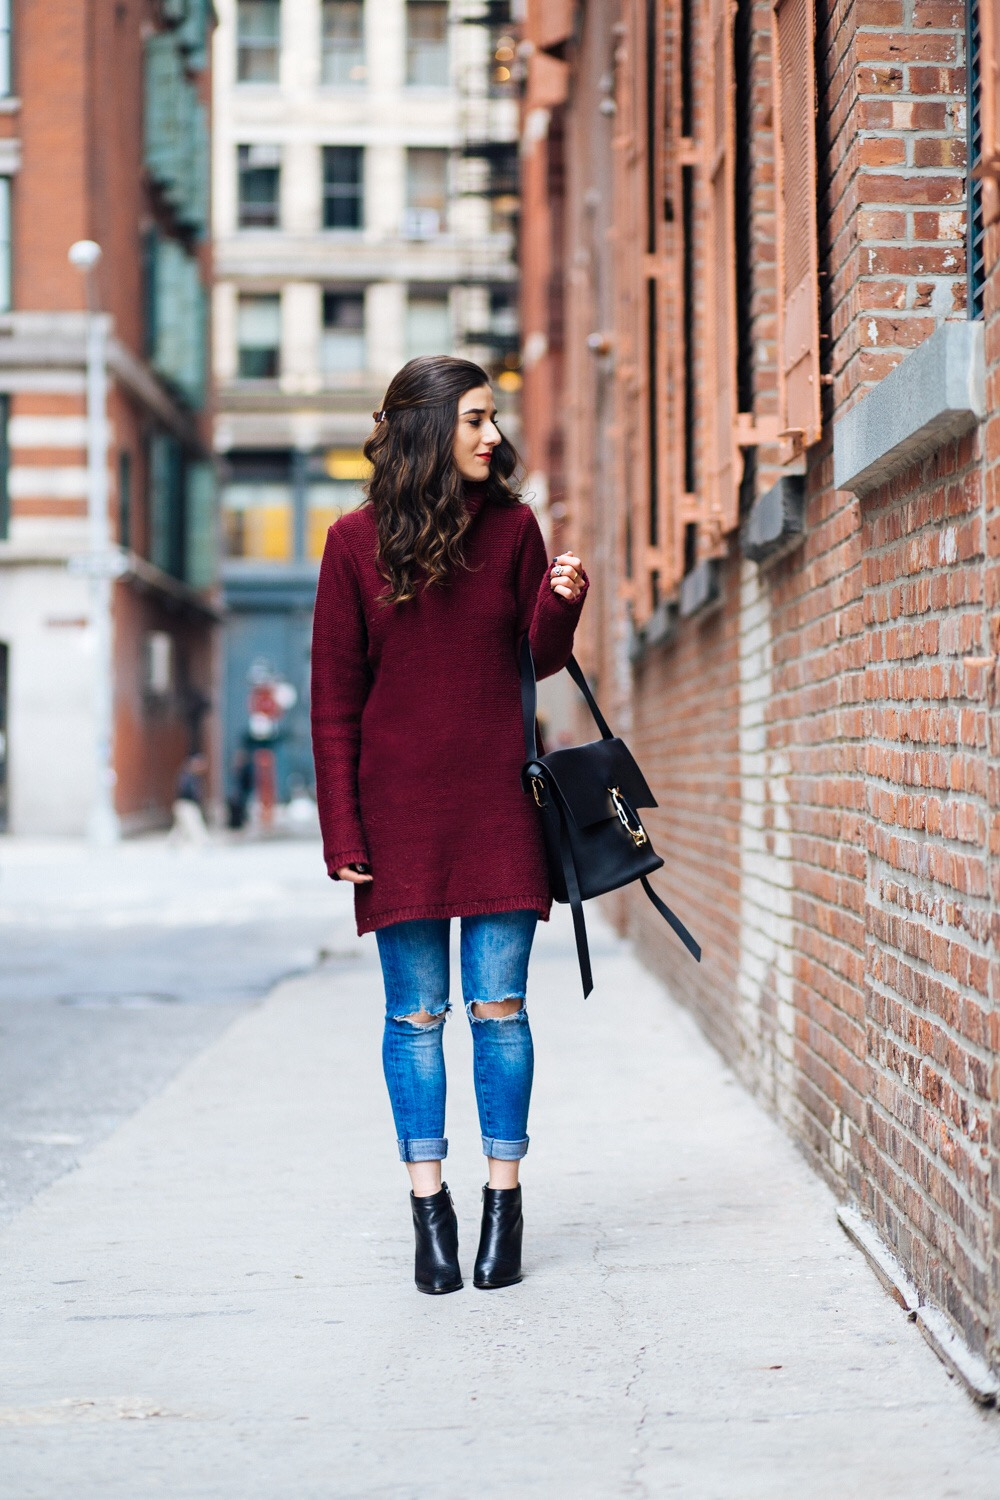 Maroon Sweater Dress Zac Posen Belay Bag 5 Tips On Balancing Work Blog And Social Life Esther Santer Fashion Blog NYC Street Style Blogger Outfit OOTD Trendy Girl Women Photoshoot Ripped Denim Jeans  Booties Hair Inspo Handbag  Purse Shoes Turtleneck.JPG